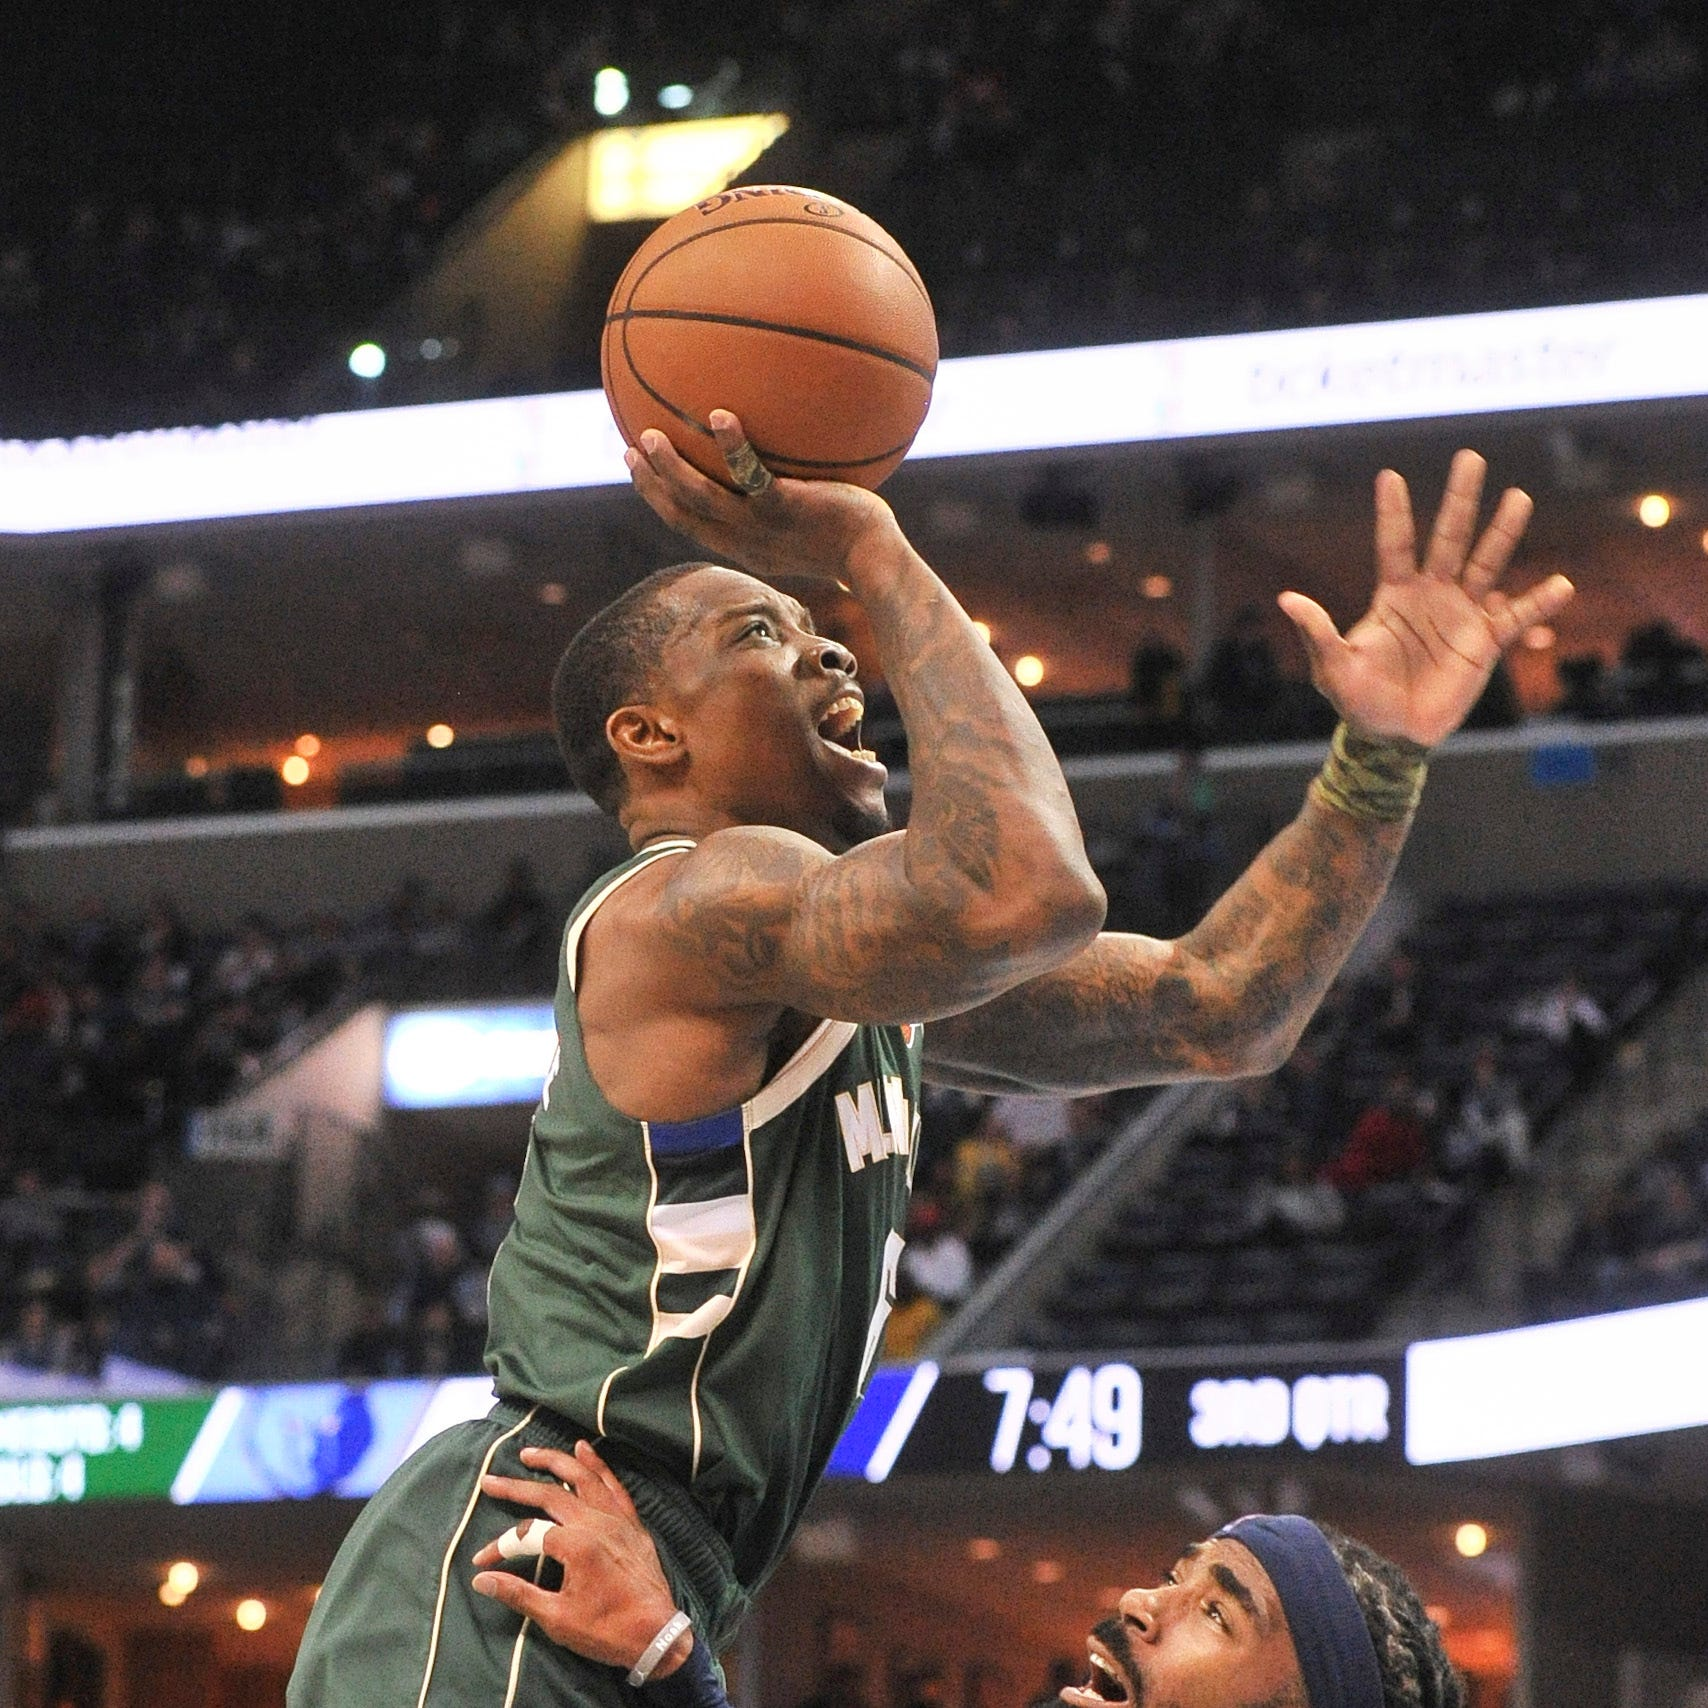 Bucks 111, Grizzlies 101: Trouble? Hardly. A 19-0 run blows this close game wide open.